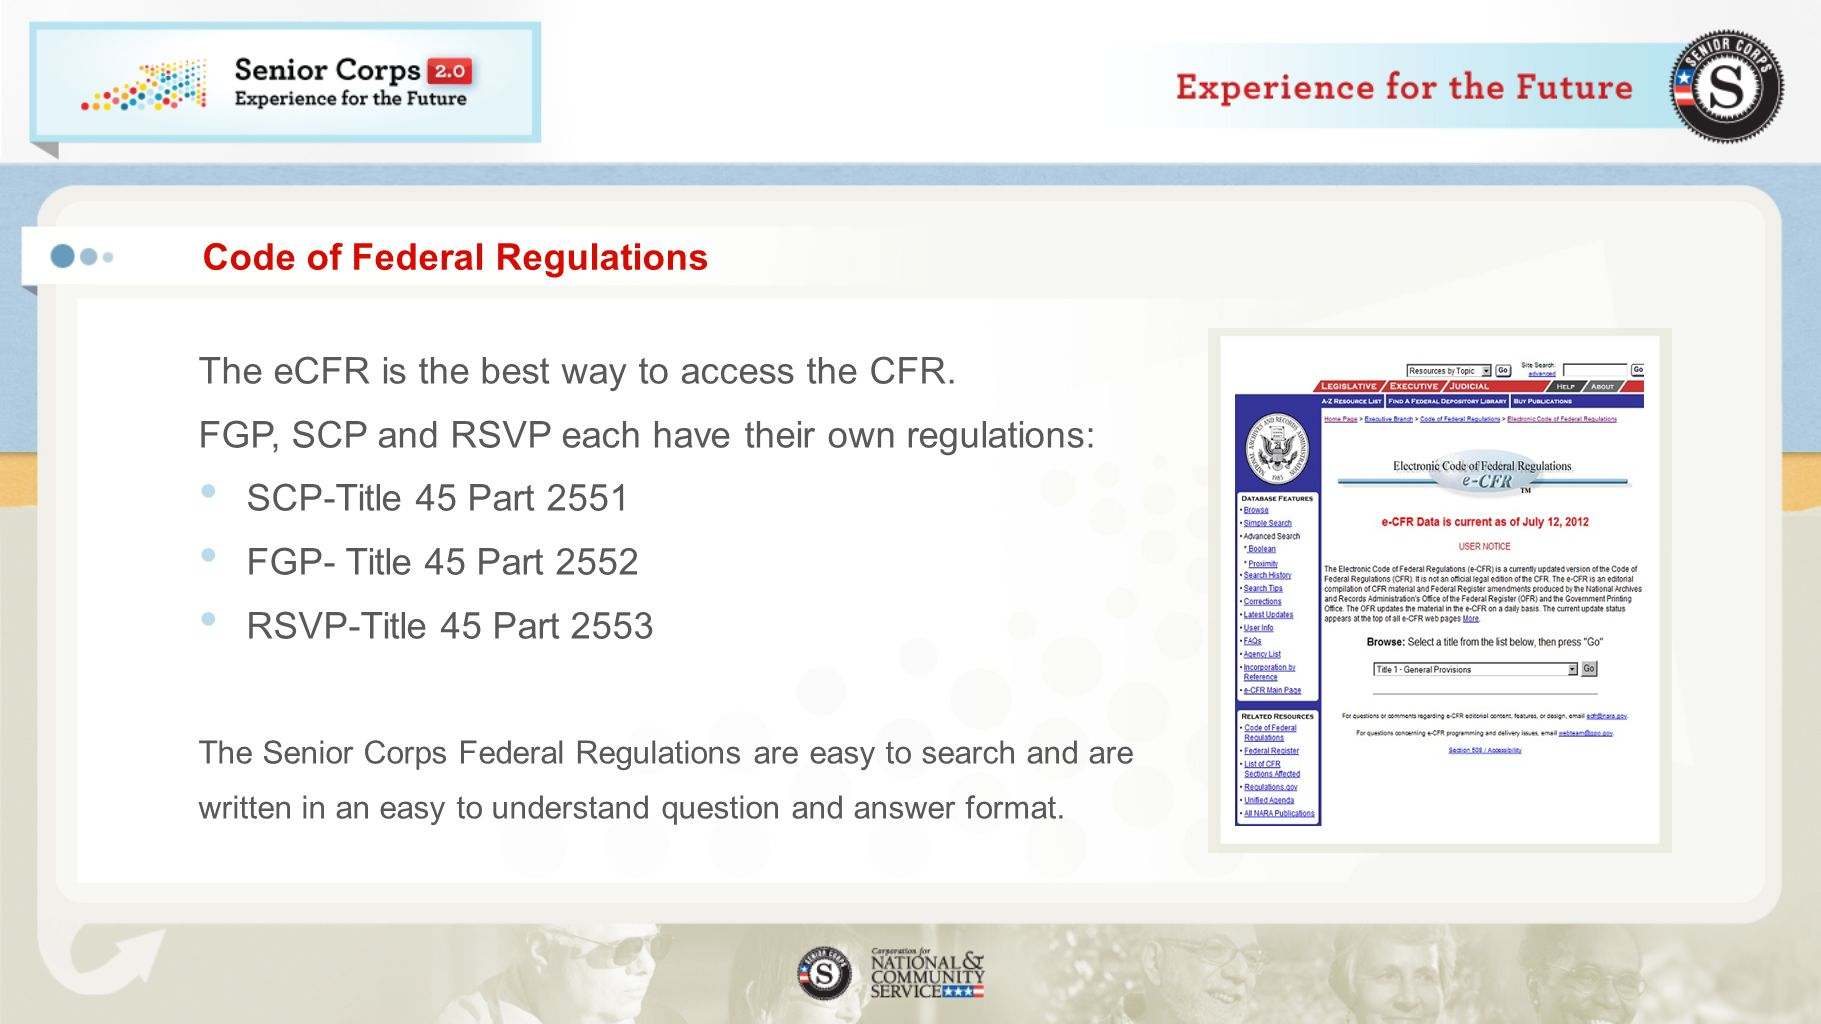 Code of Federal Regulations The eCFR is the best way to access the CFR. FGP, SCP and RSVP each have their own regulations: SCP-Title 45 Part 2551 FGP-